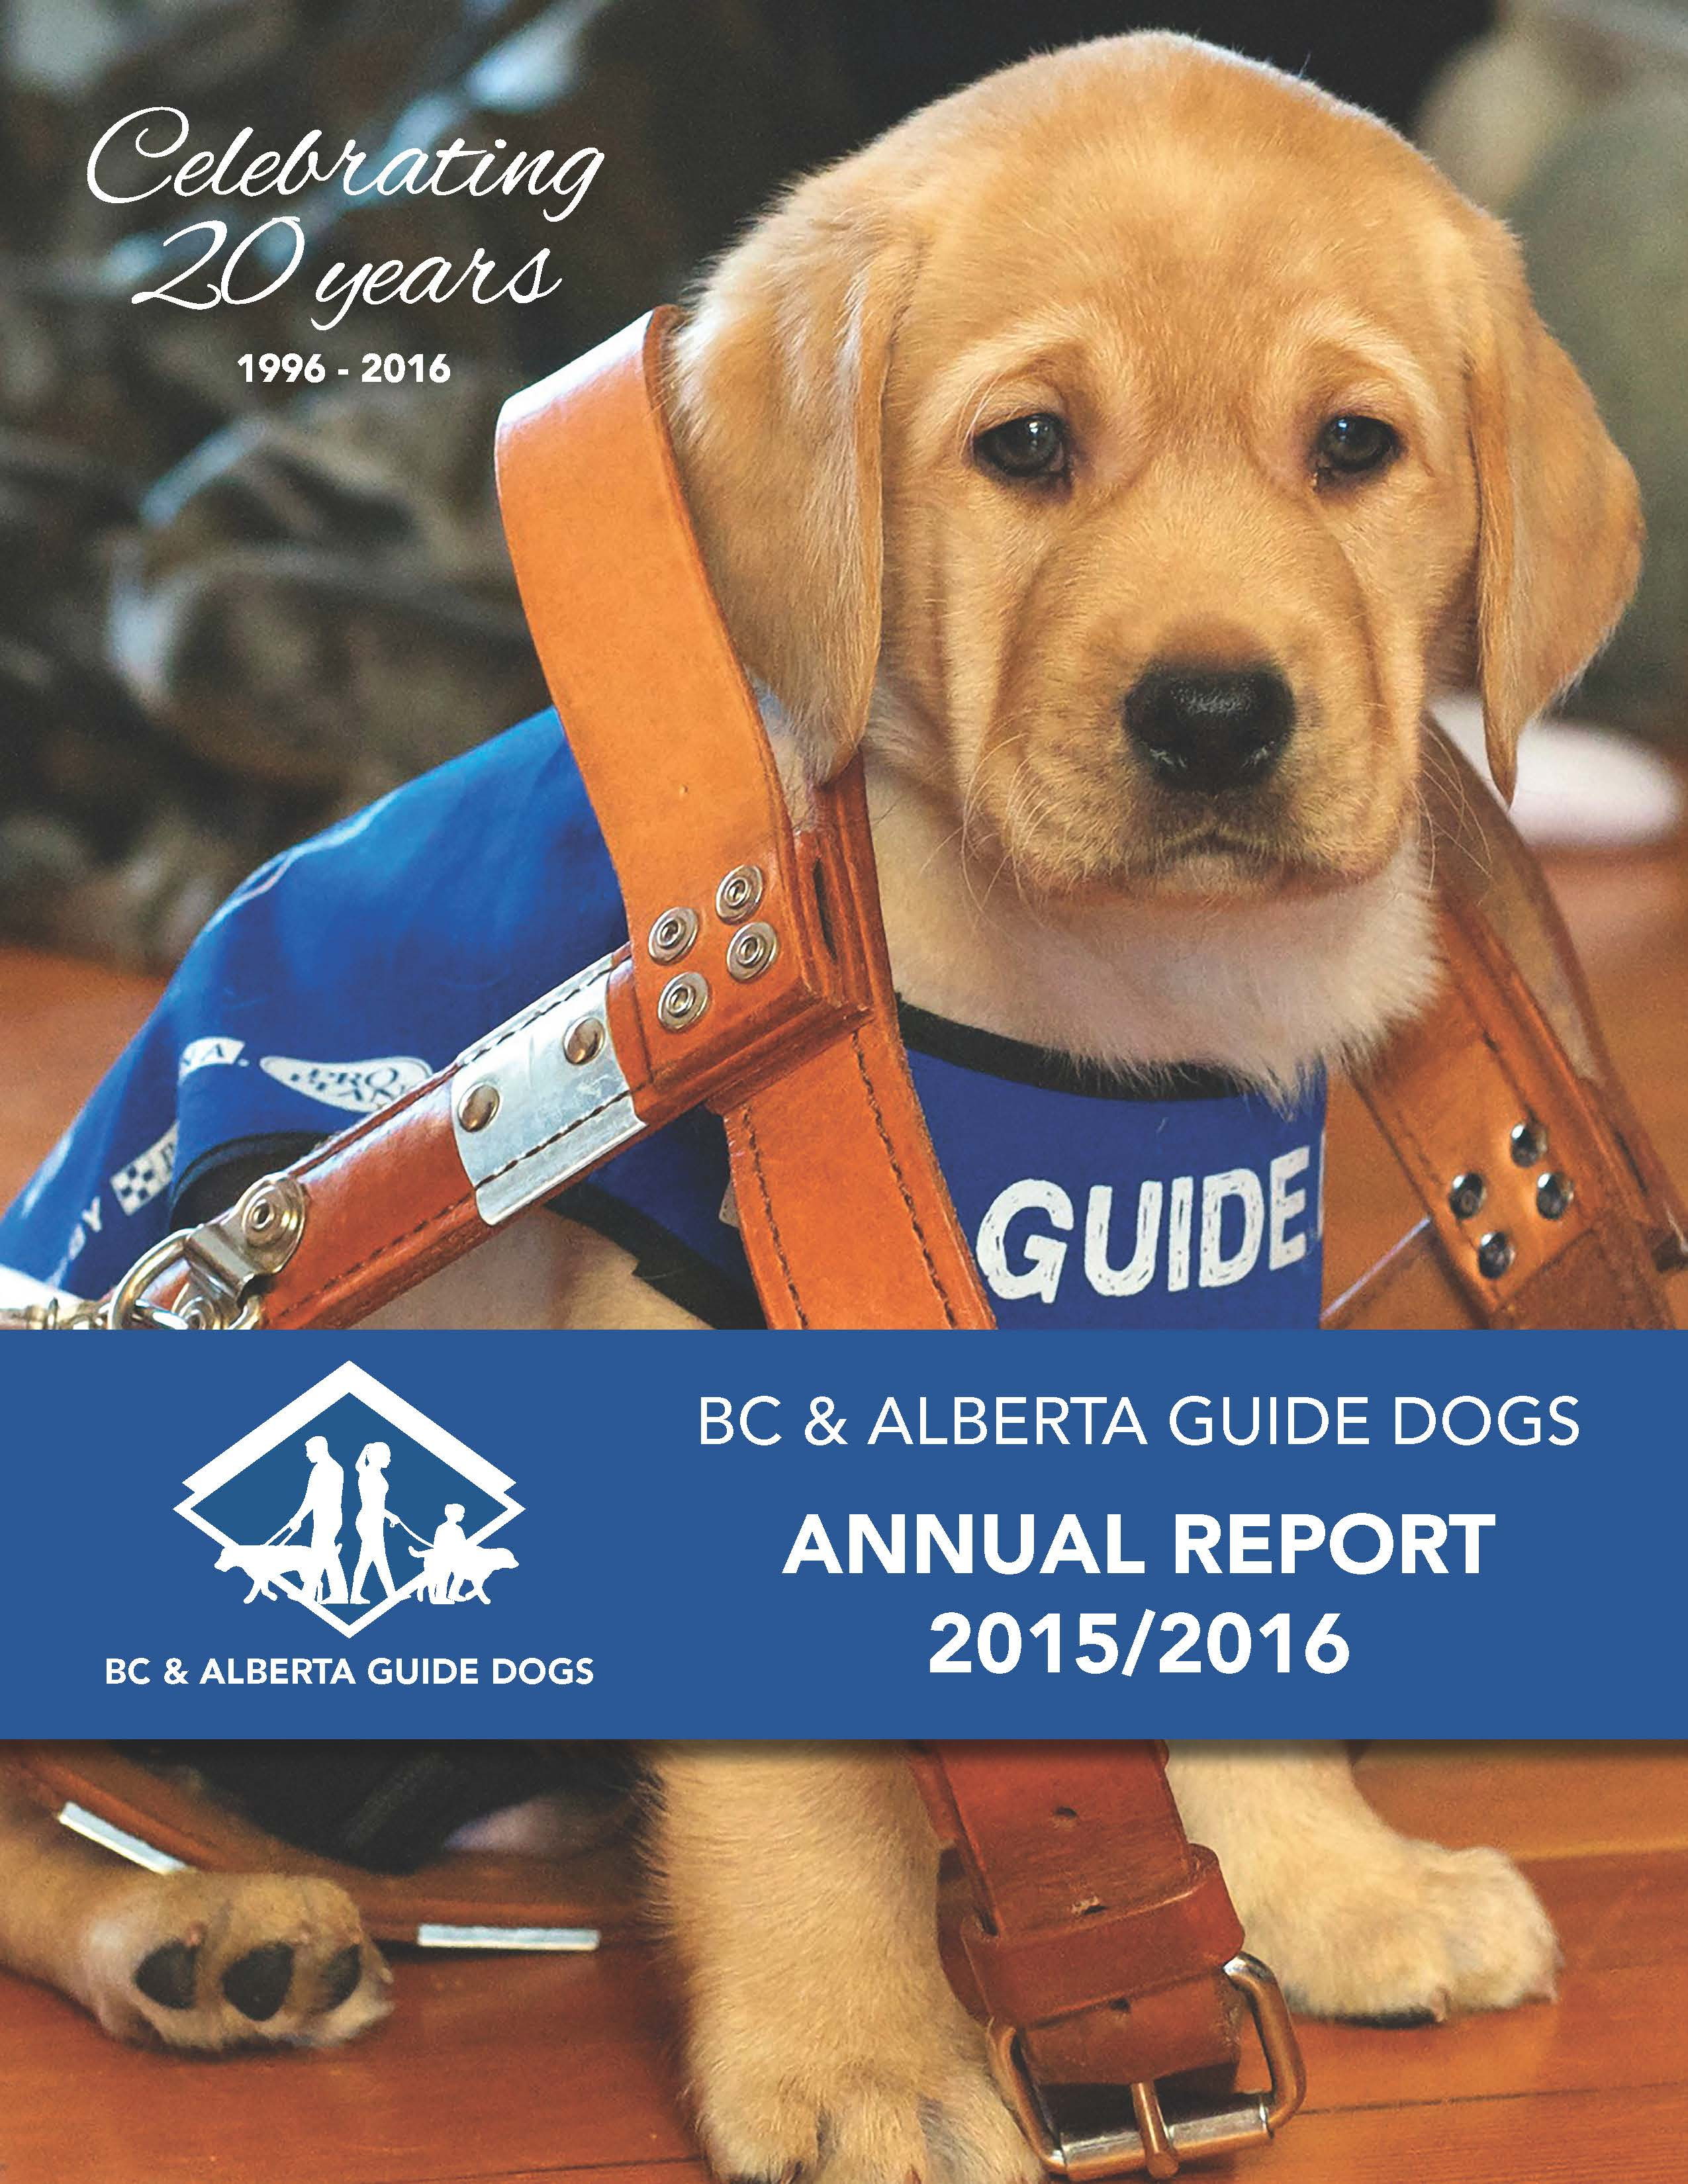 a report on guide dogs Canadian guide dogs for the blind complaint review: canadian guide dogs for the blind jane thornton co-founder coo manotick ontario.